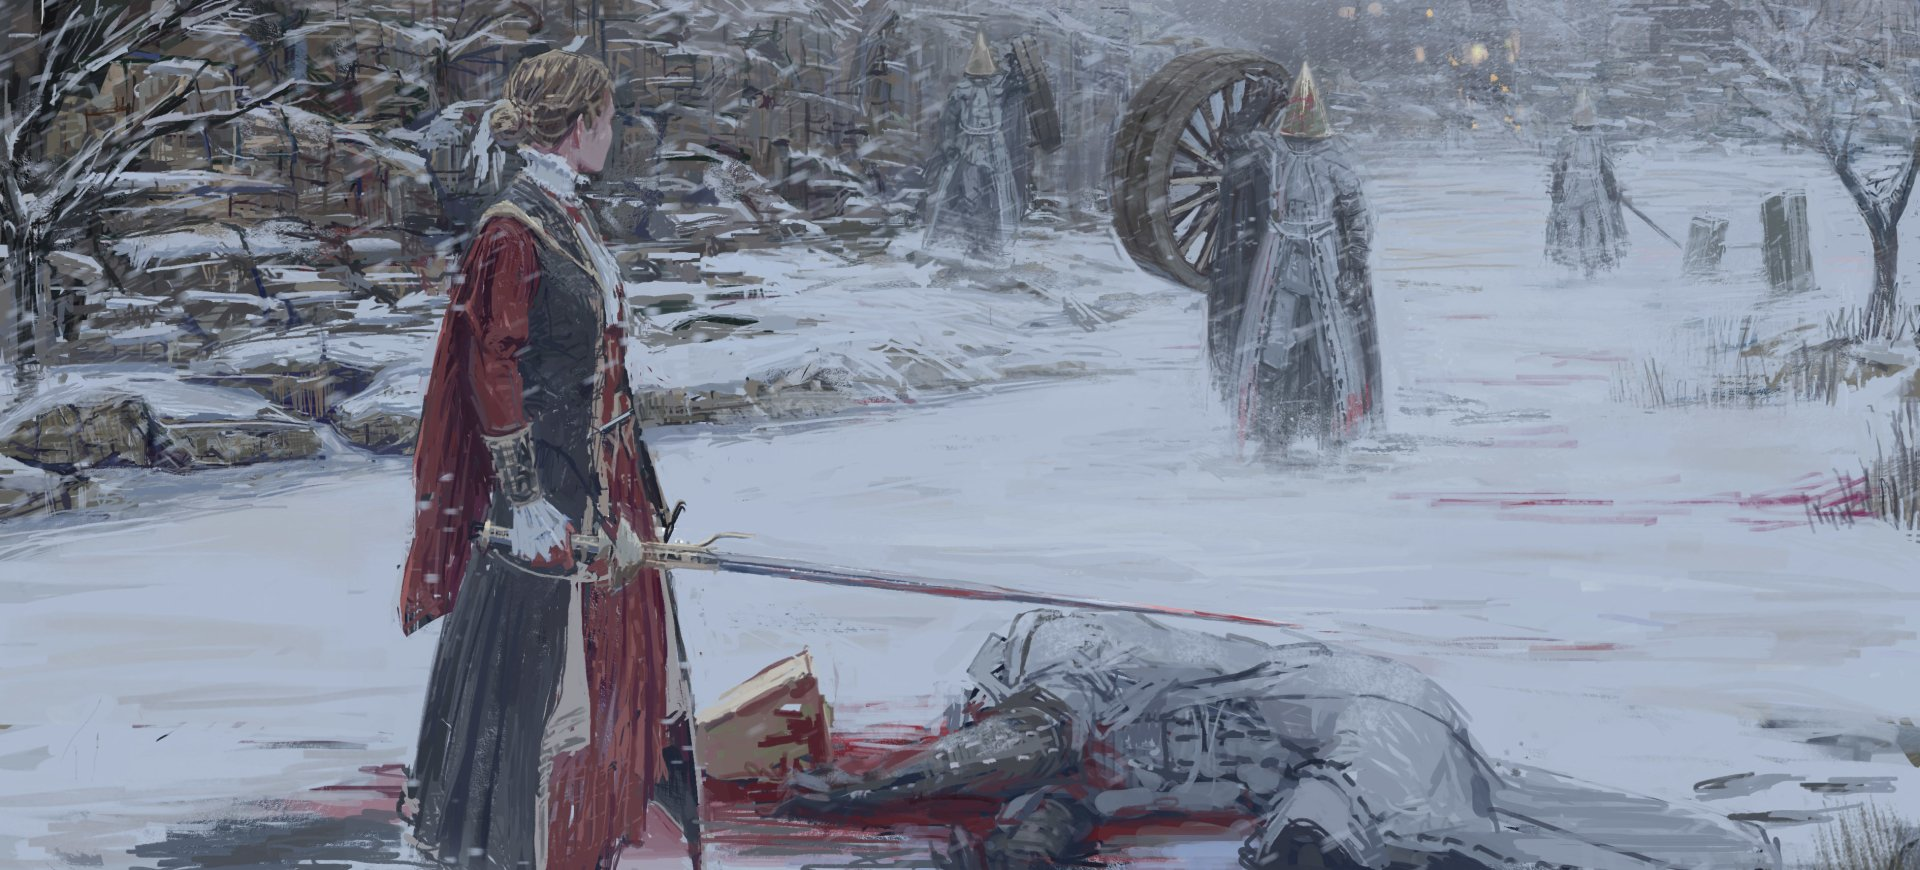 Video Game - Bloodborne  Woman Warrior Sword Winter Snow Snowfall Wallpaper